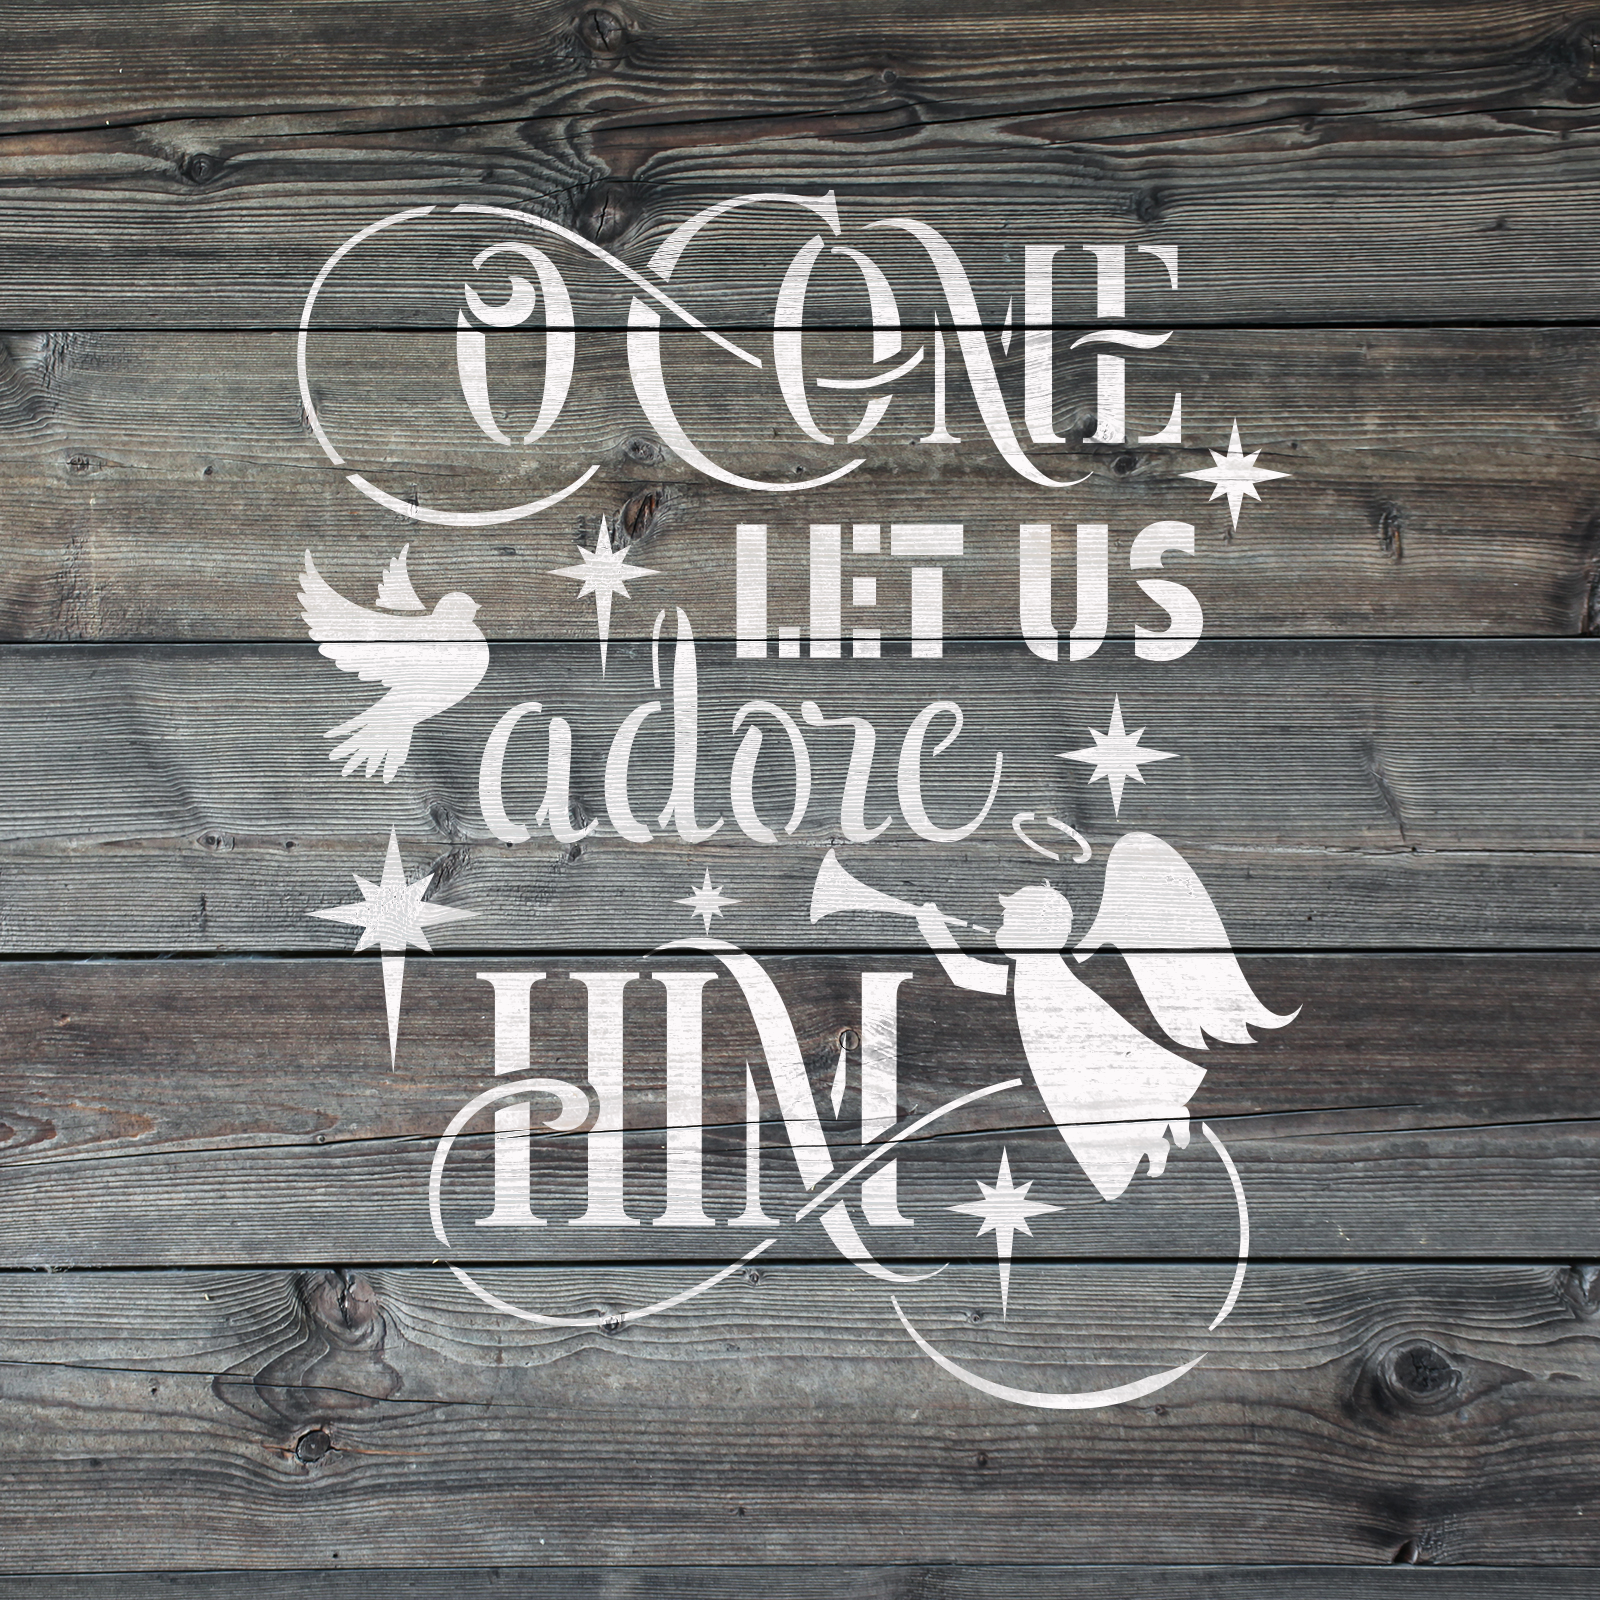 Adore Him Stencil - Reusable Stencils of Adore Him in Small & Large Sizes